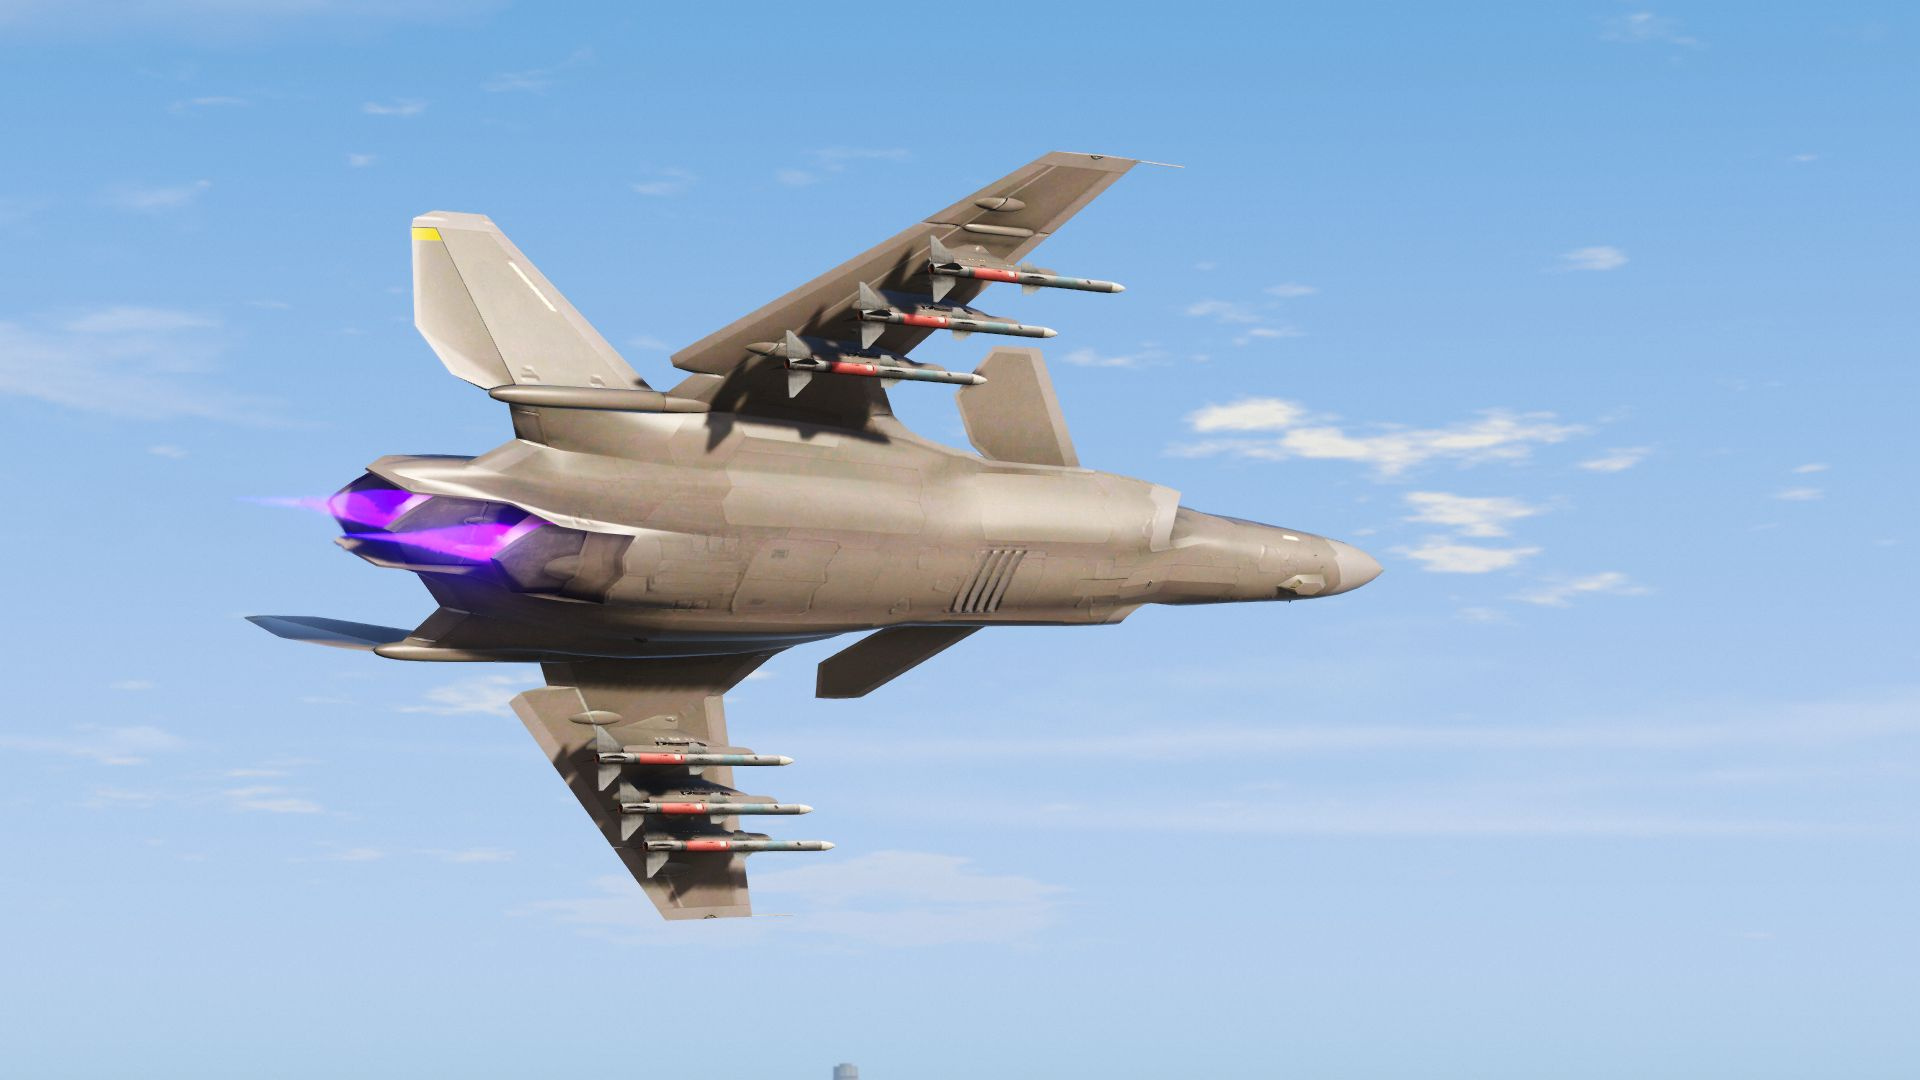 Asf x shinden ii ace combat add on gta5 for Combat portent 30 20